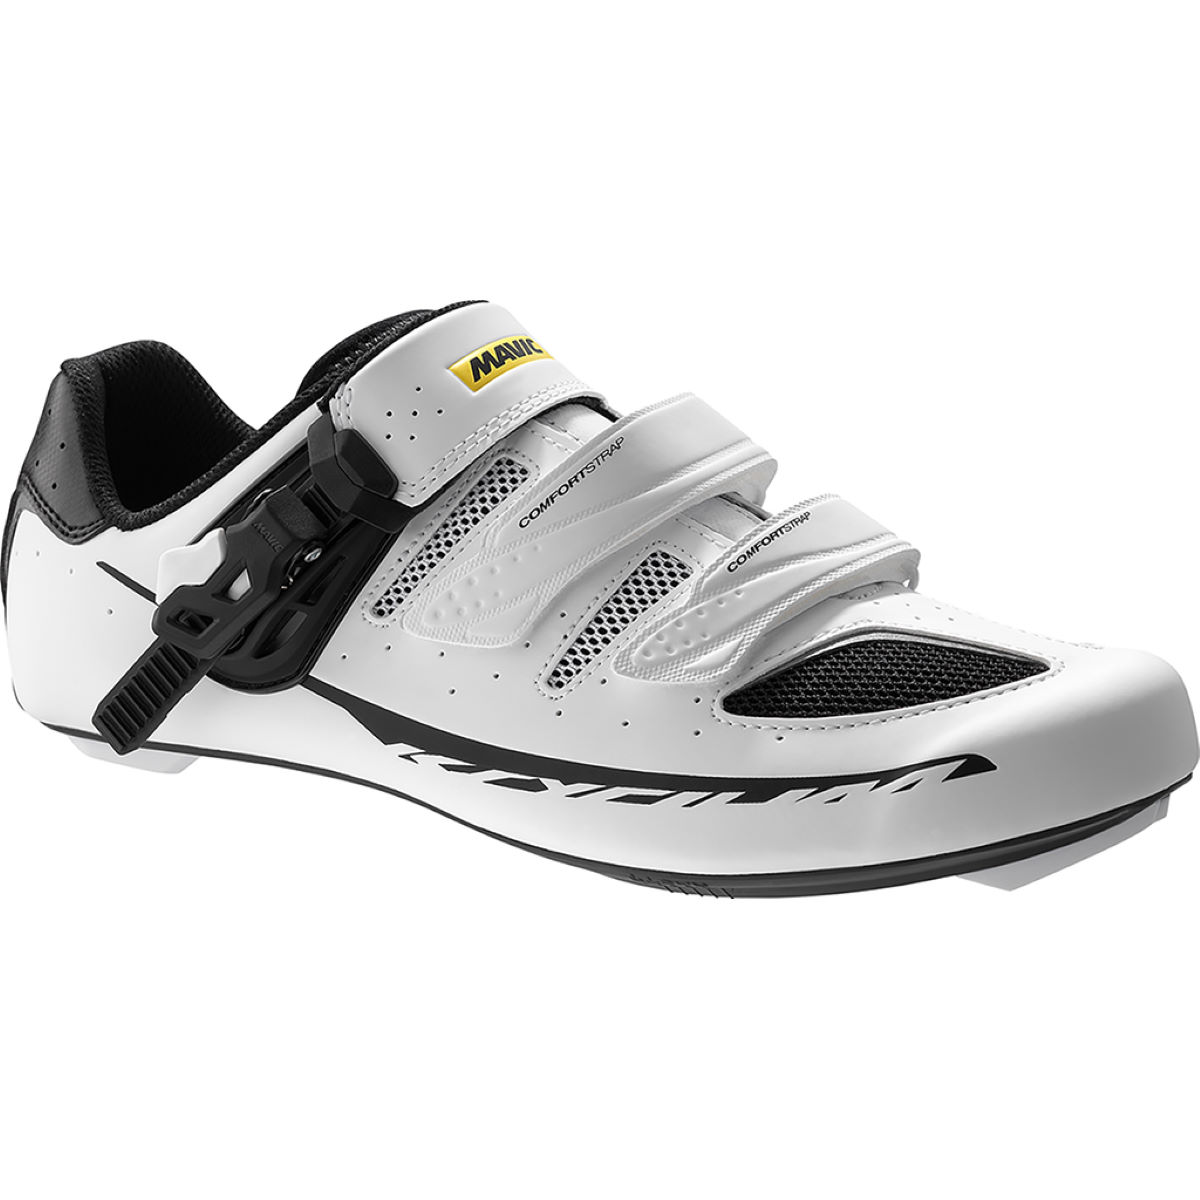 Chaussures Mavic Ksyrium Elite Maxi Fit II - 10,5 UK Blanc Chaussures de route